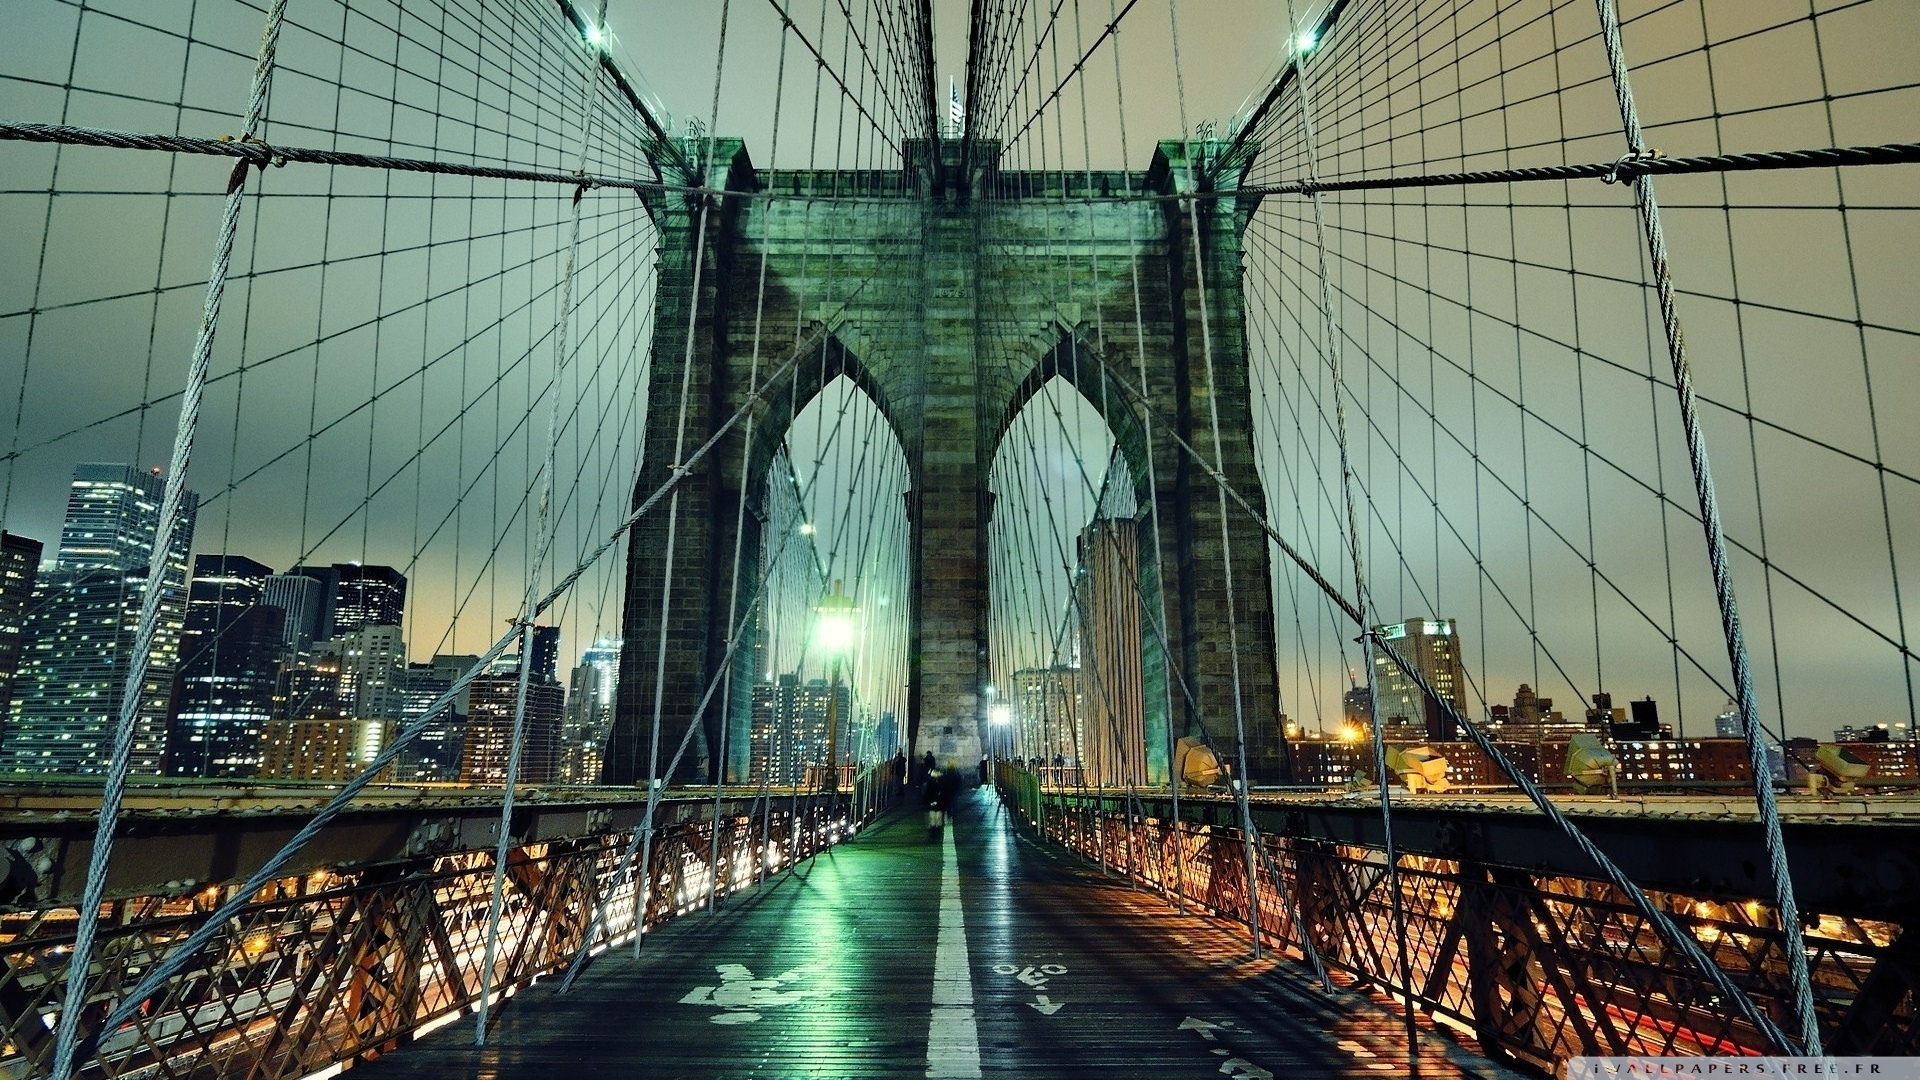 brooklyn_bridge_at_night_2-wallpaper-1920x1080.jpg